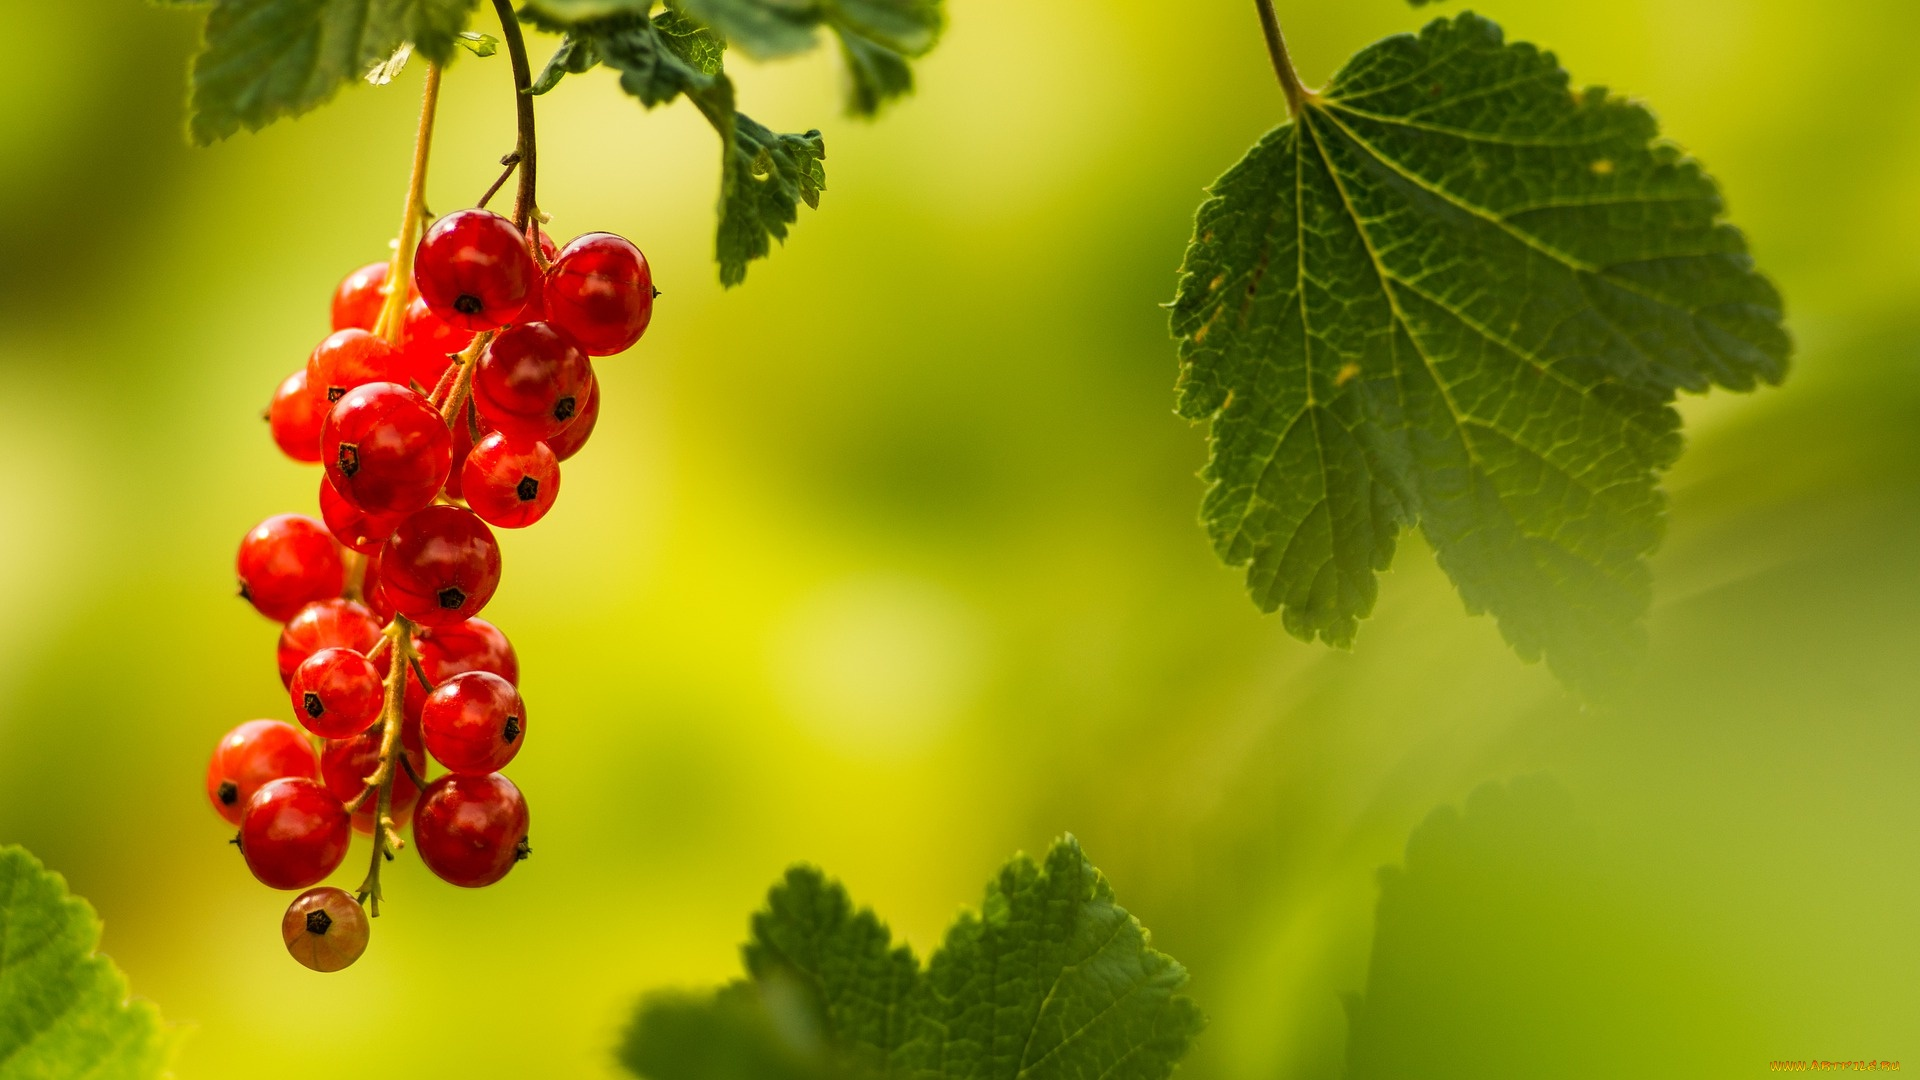 Berries On A Branch windows background